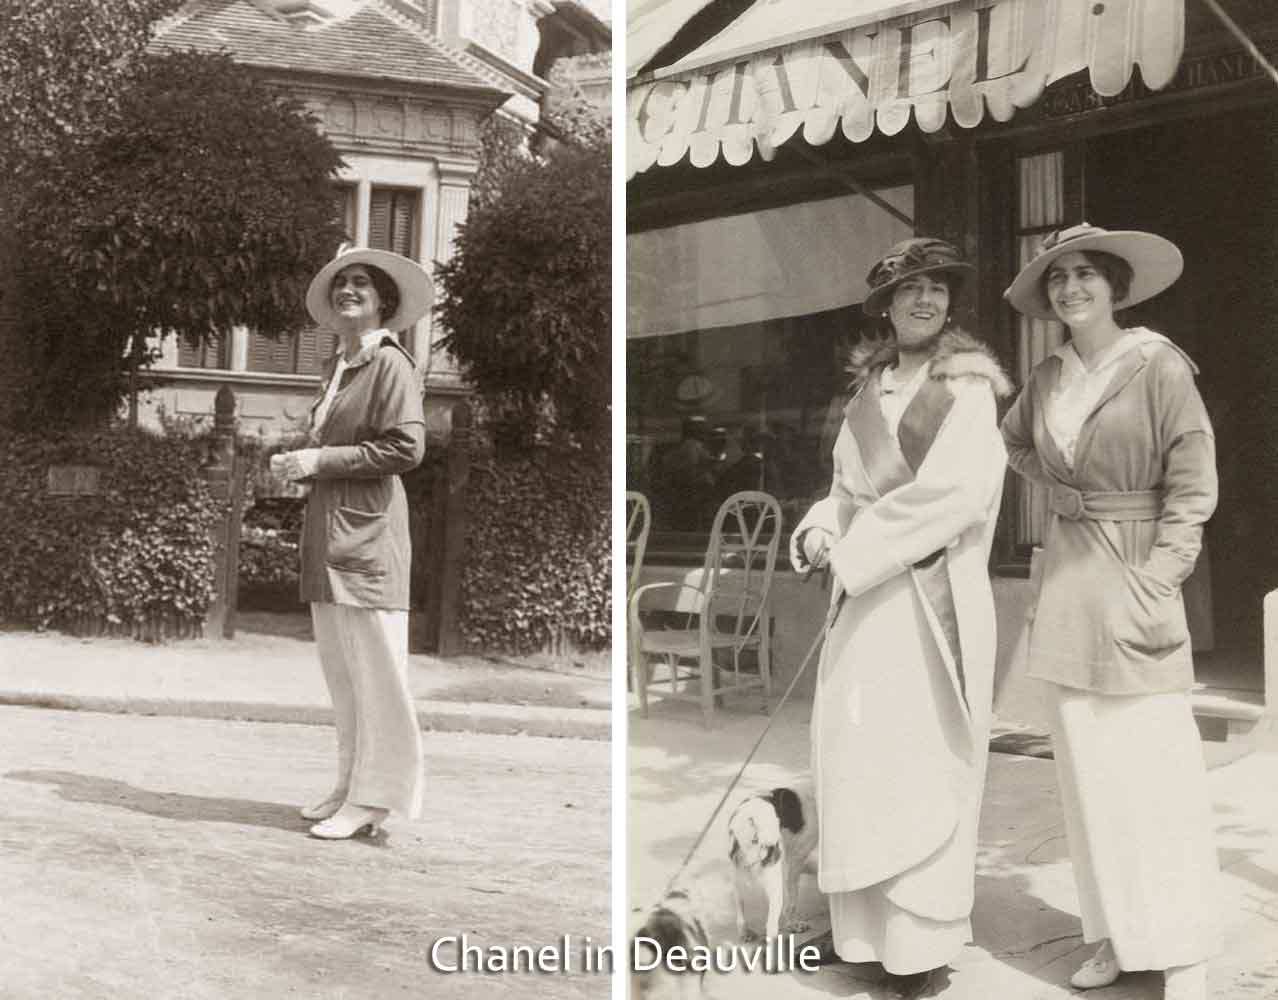 f8ee1db9 Deauville - The Town where Fashion went on Holiday | Glamour Daze